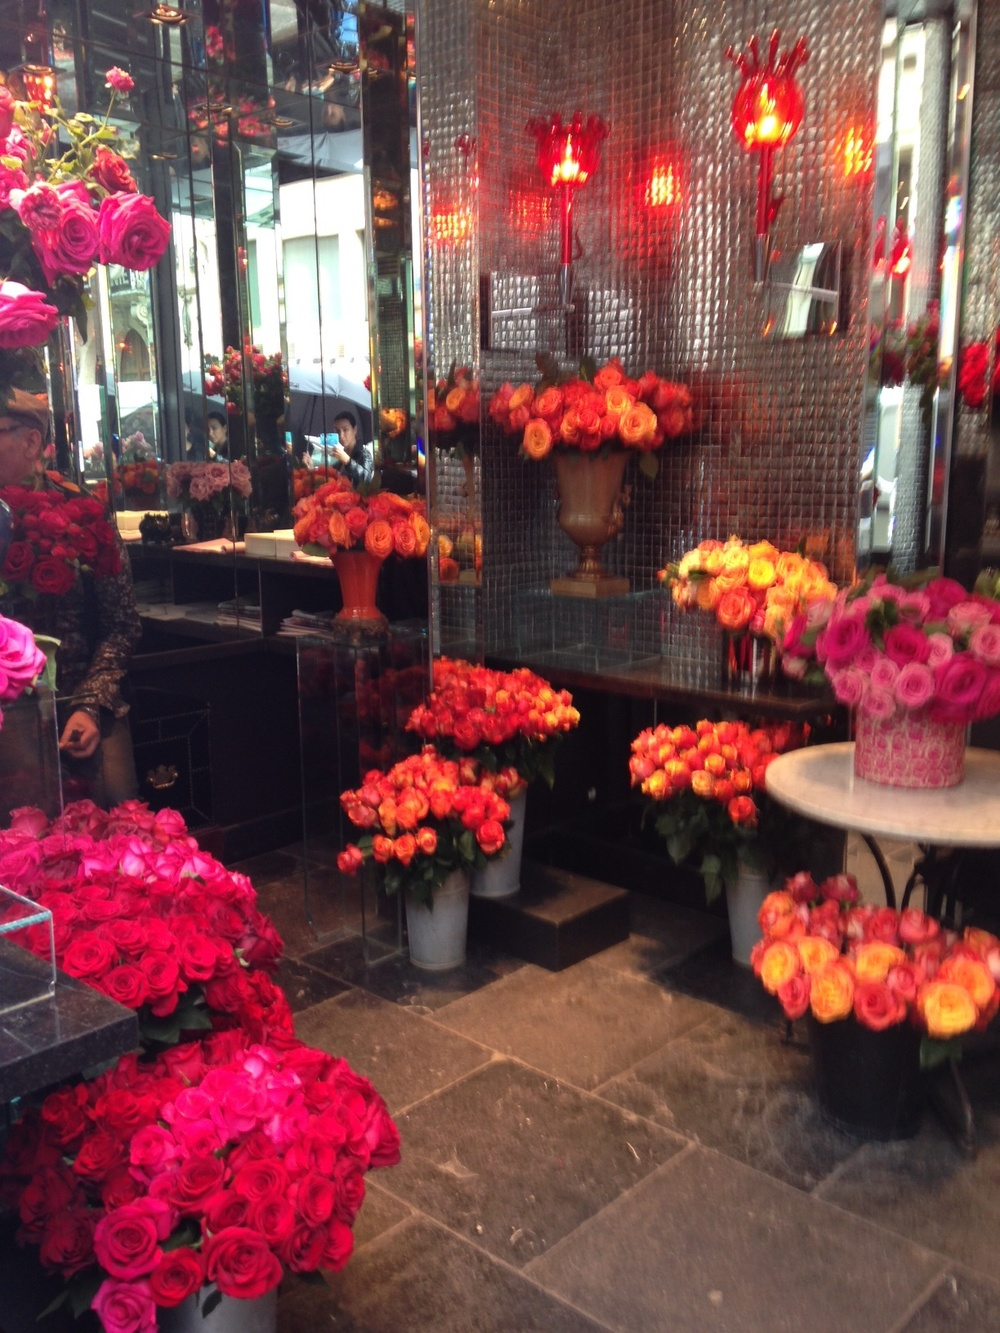 The roses at Hotel Costes.